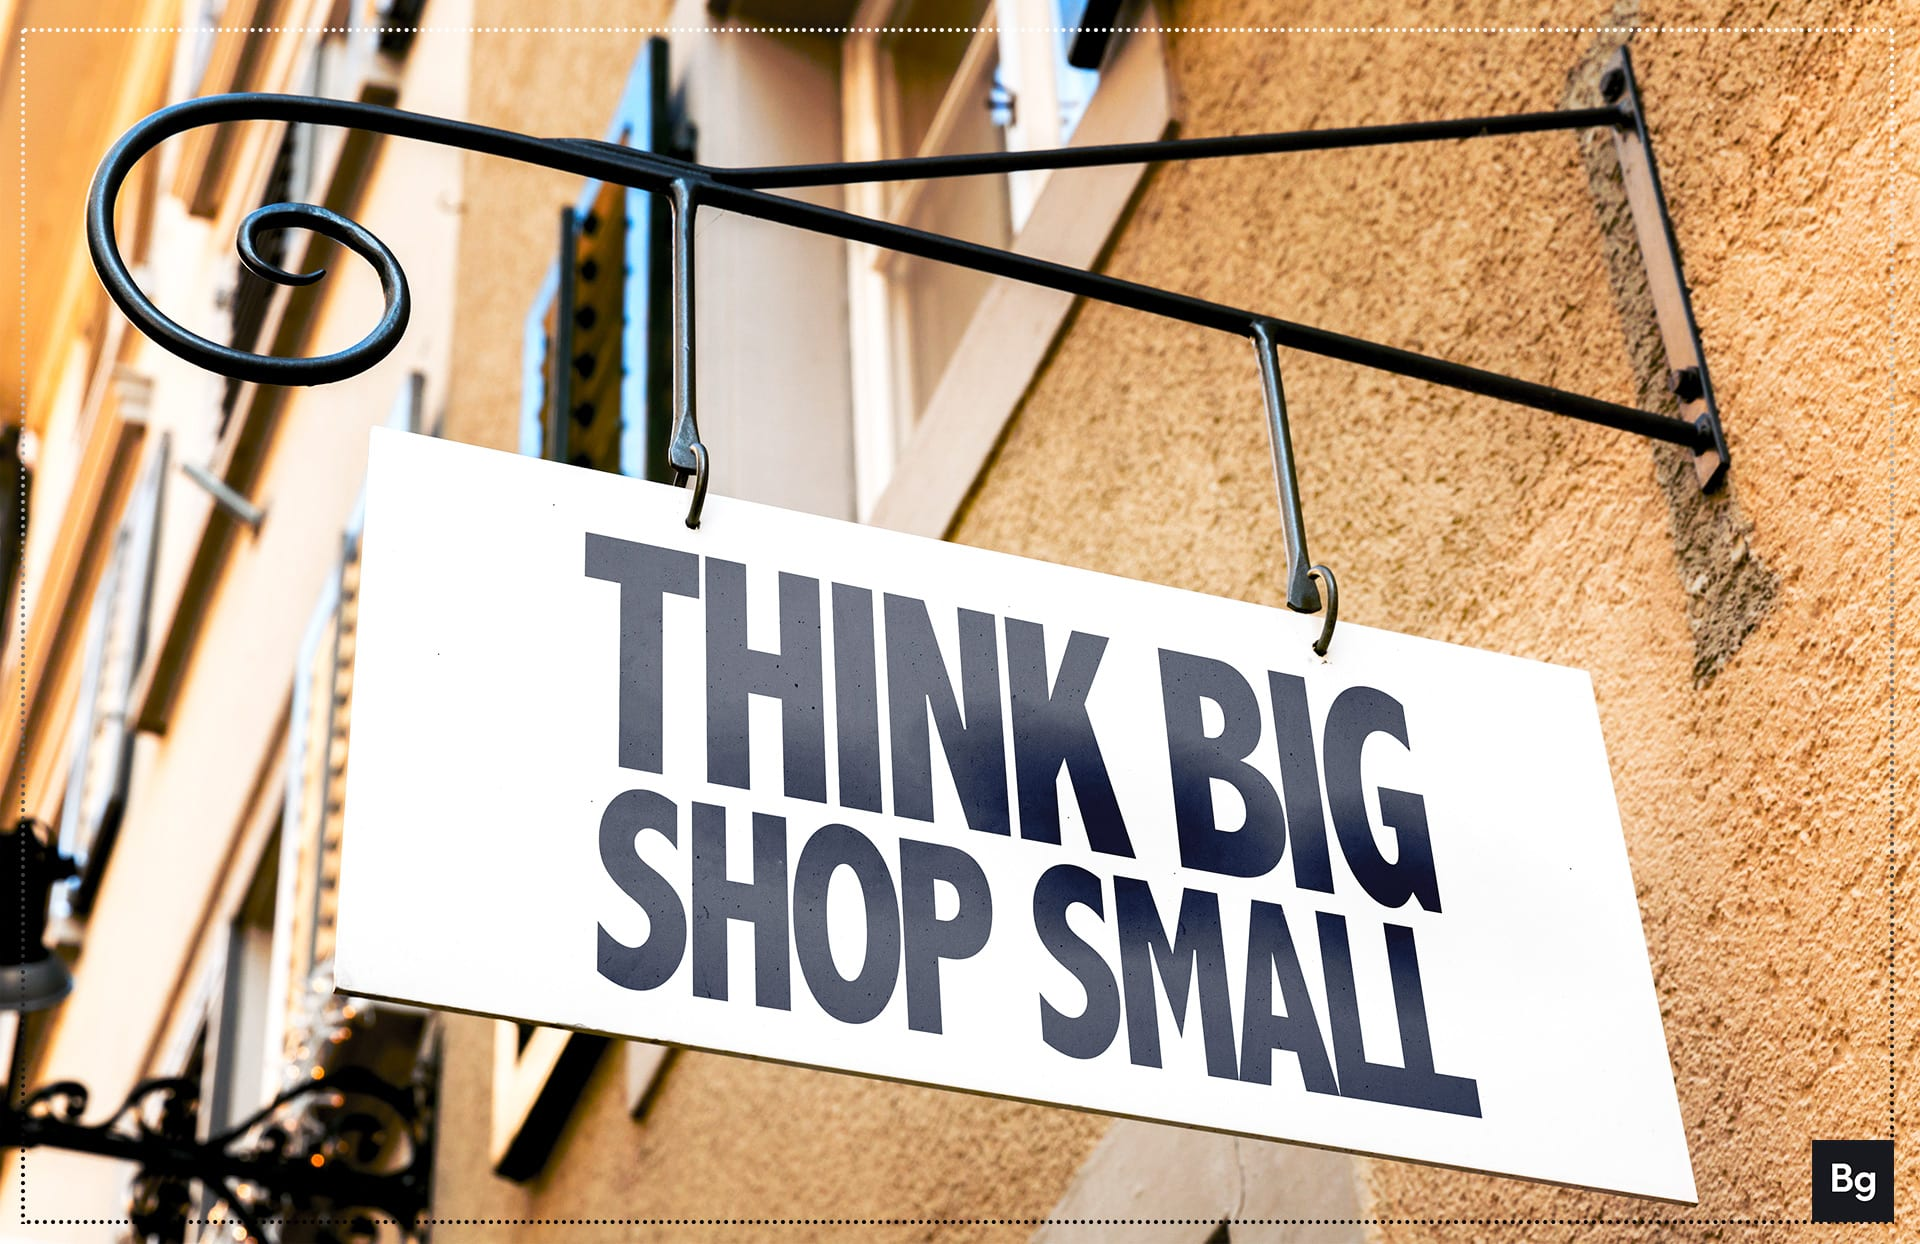 Think Big Shop Small. Incentive for local SEO